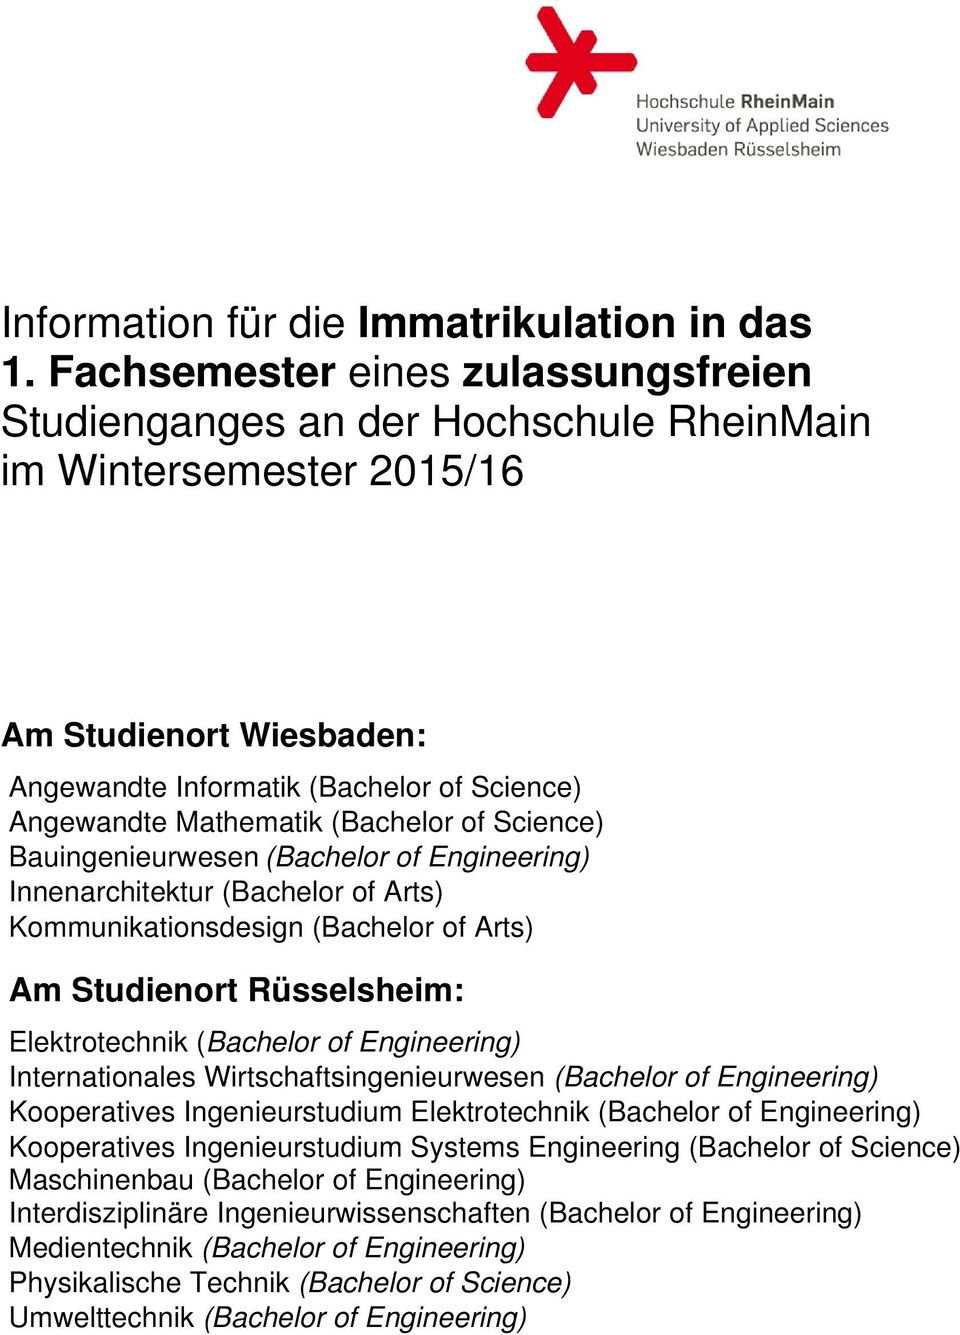 (Bachelor of Science) Bauingenieurwesen (Bachelor of Engineering) Innenarchitektur (Bachelor of Arts) Kommunikationsdesign (Bachelor of Arts) Am Studienort Rüsselsheim: Elektrotechnik (Bachelor of